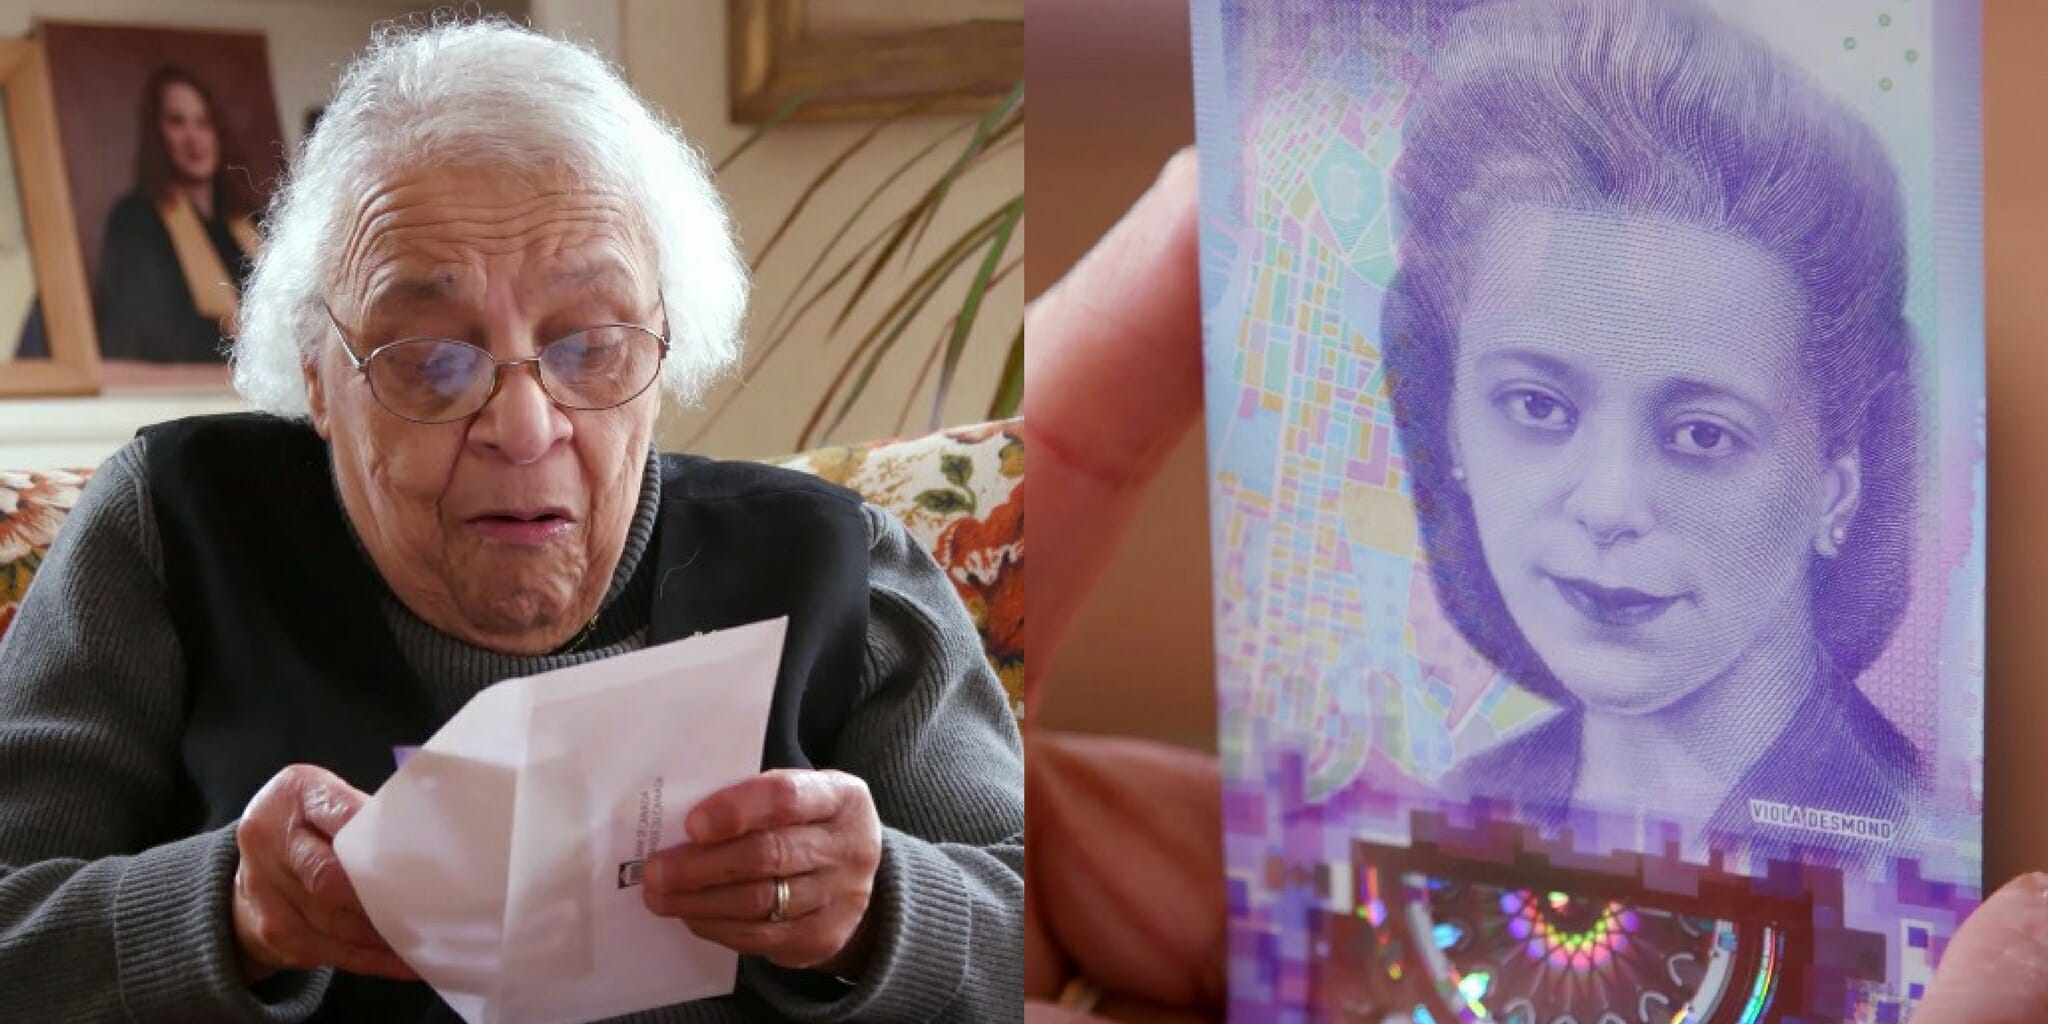 Canada's unveils new vertical $10 bill featuring Viola Desmond